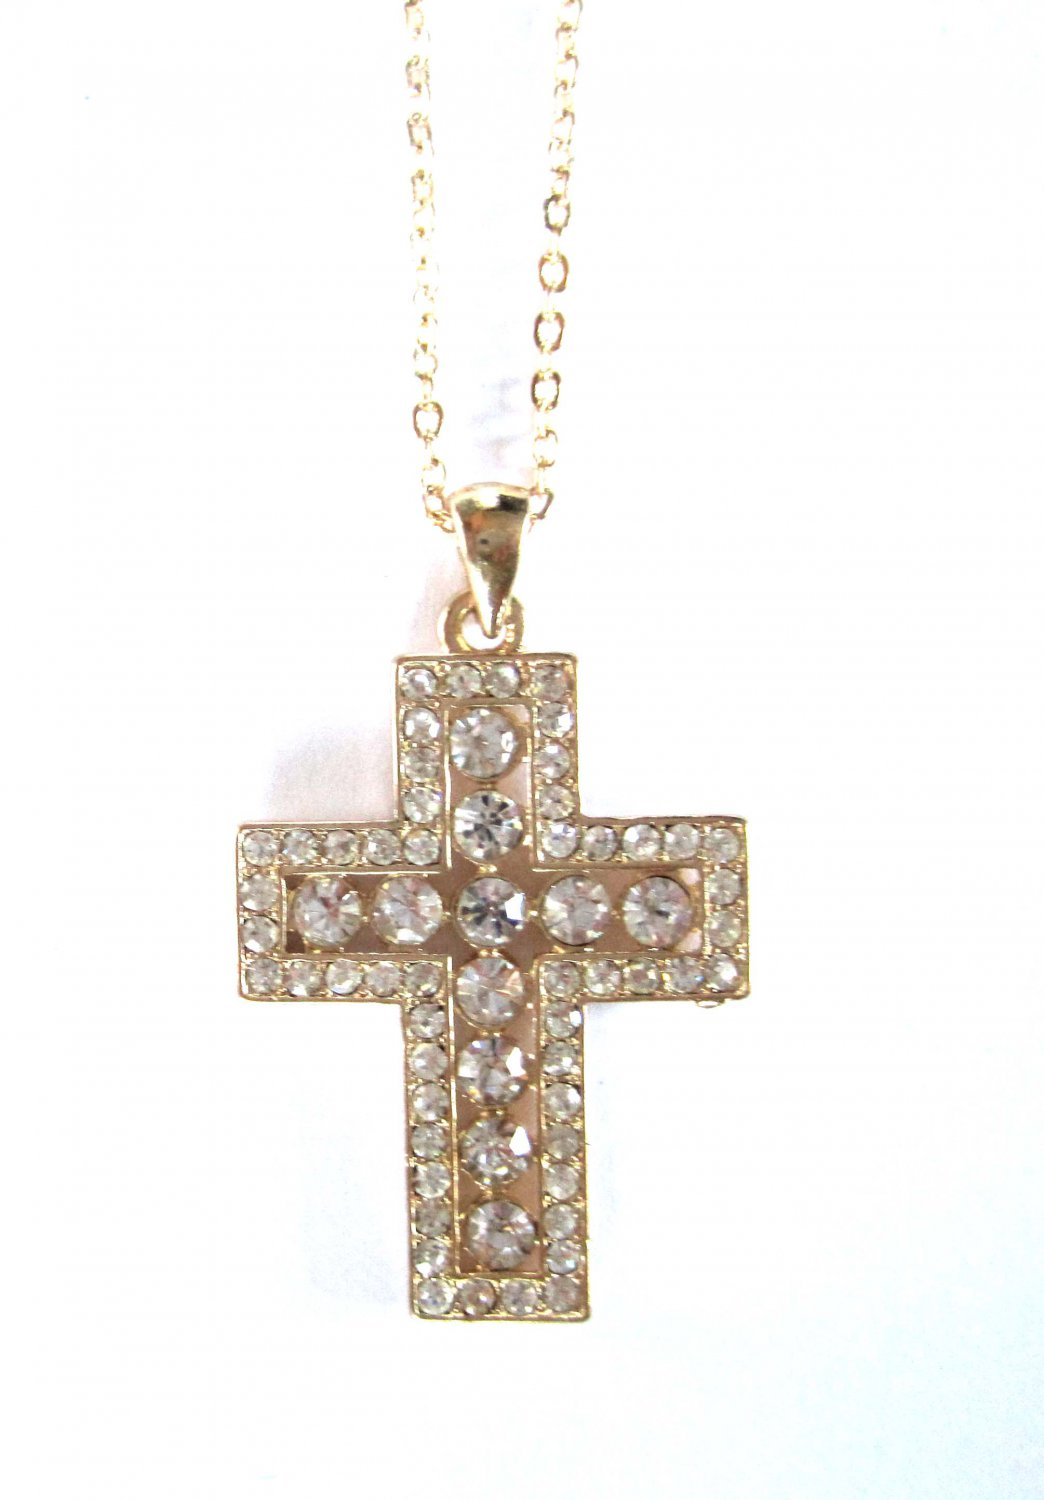 Gold cross with white crystals pendant on chain